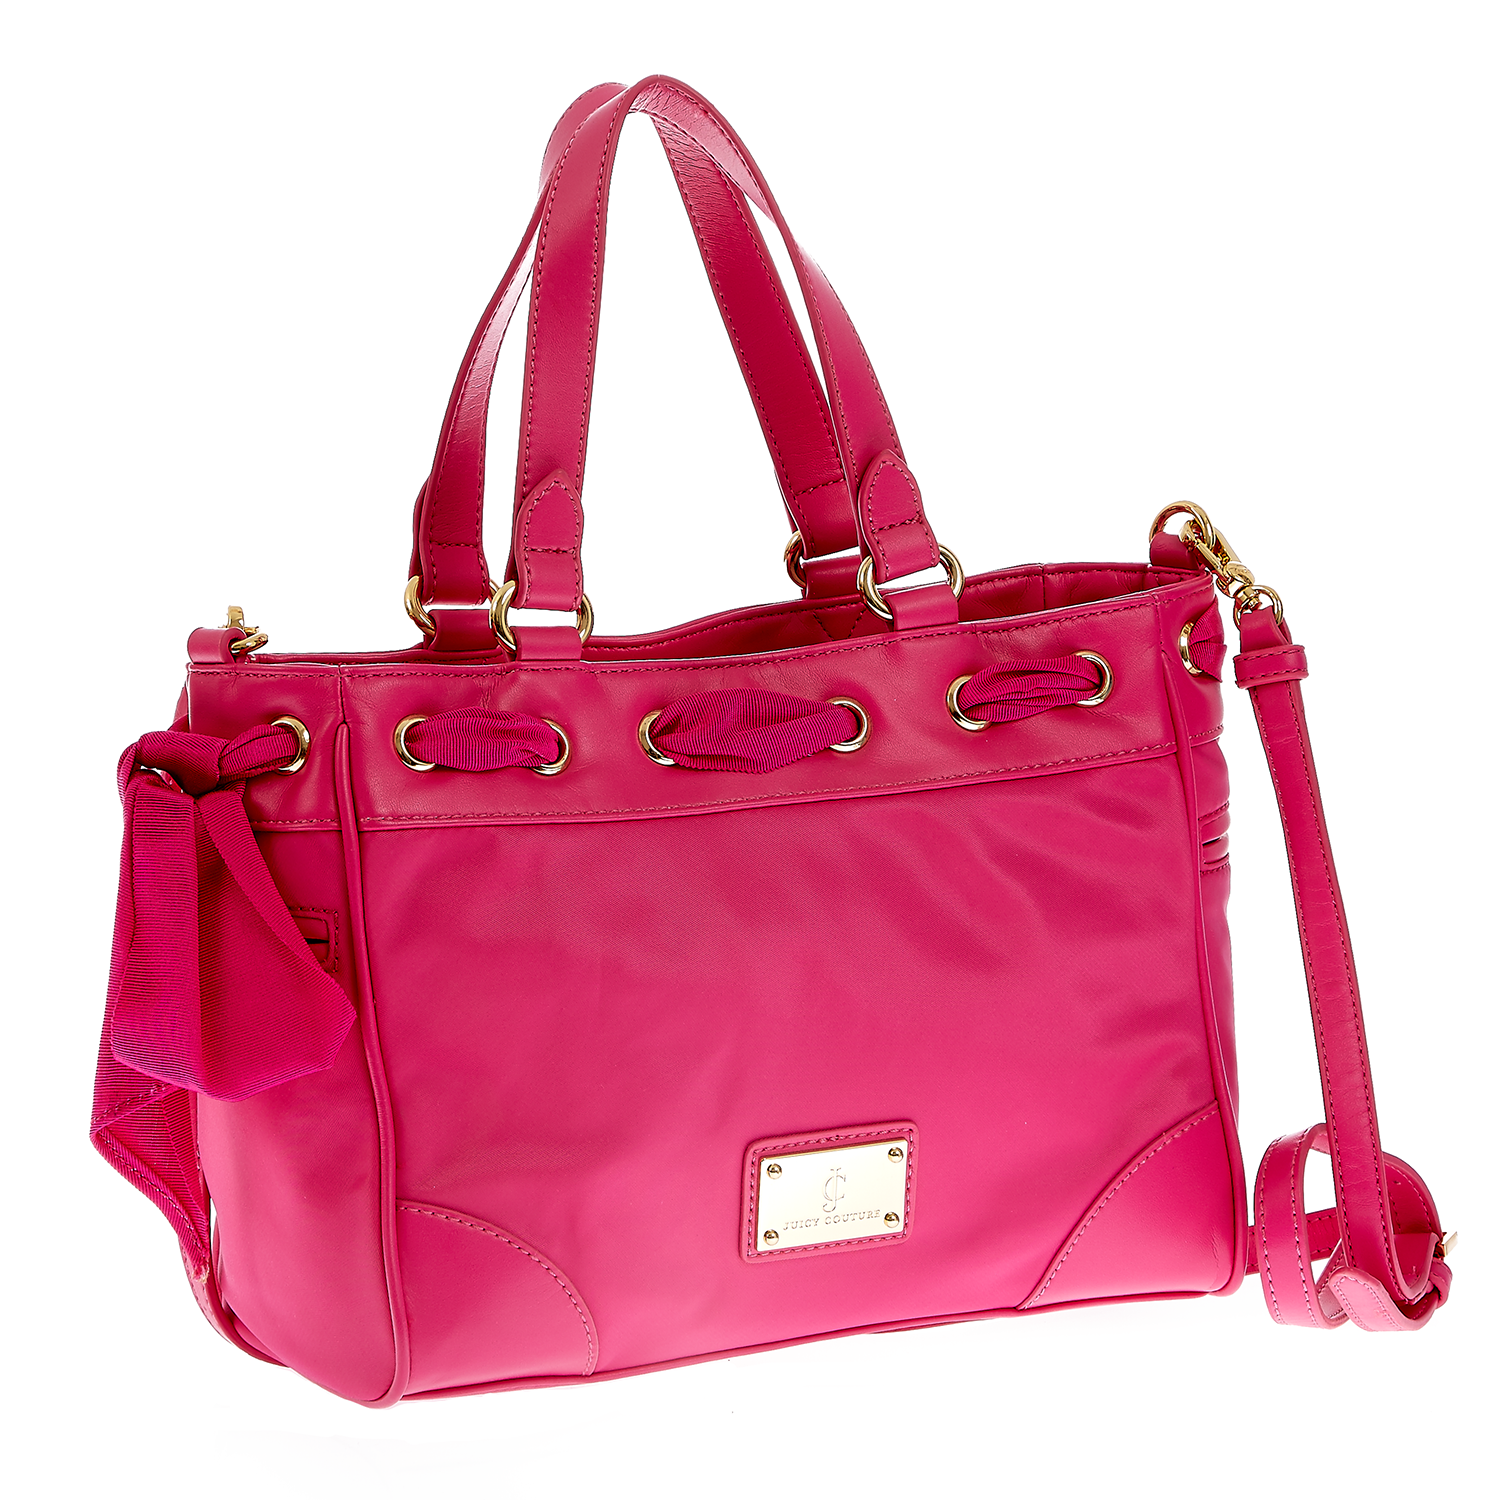 JUICY COUTURE – Γυναικεία τσάντα Juicy Couture φούξια 1400739.0-00F1